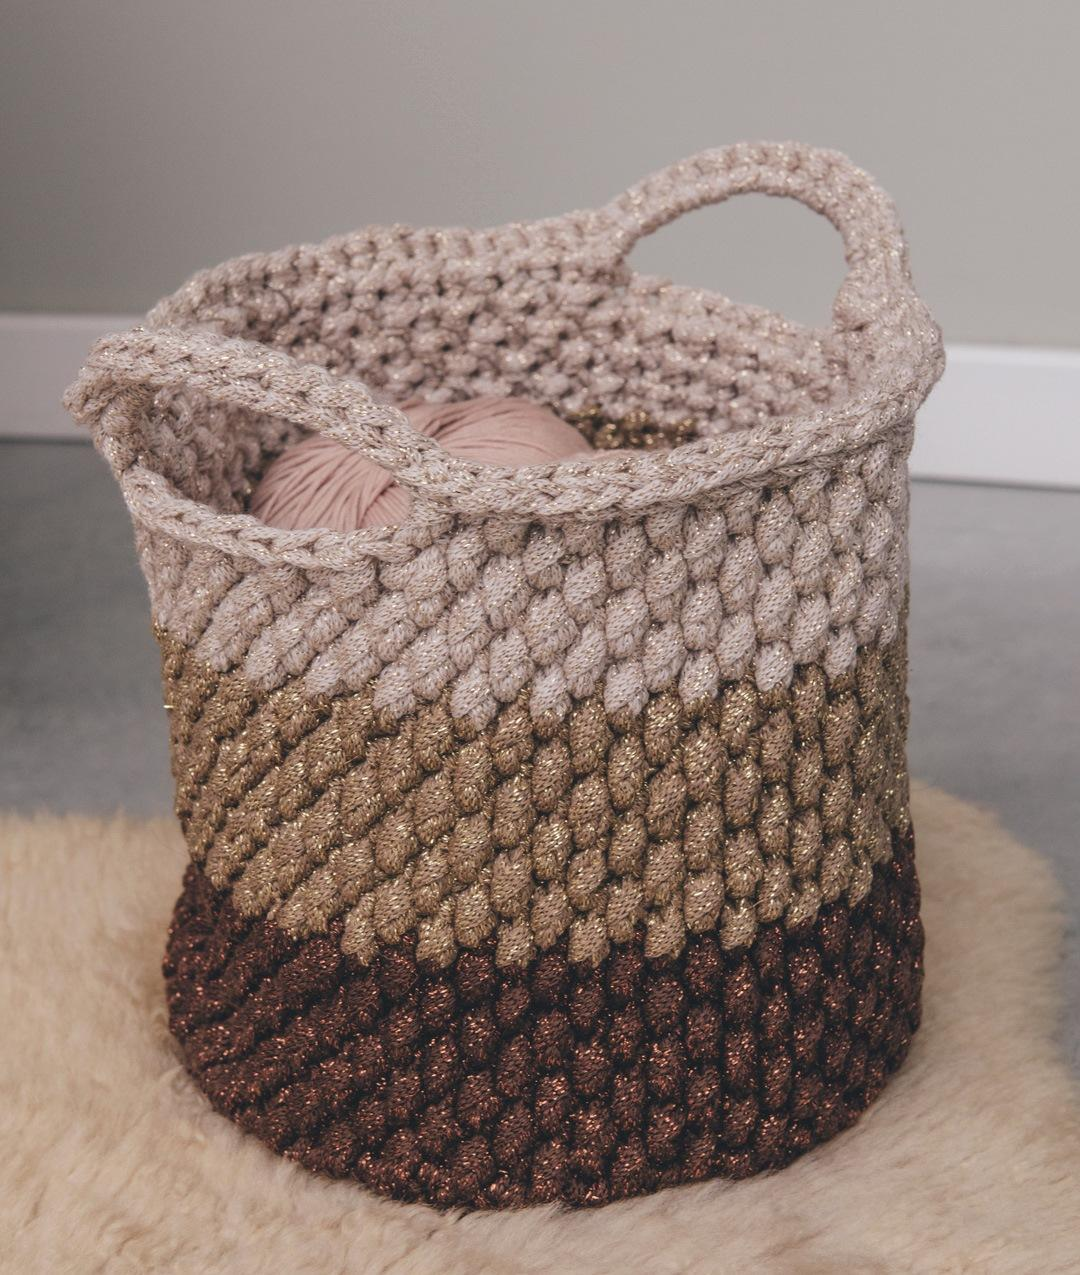 Homeware - Cotton - SHINY BASKET - 1